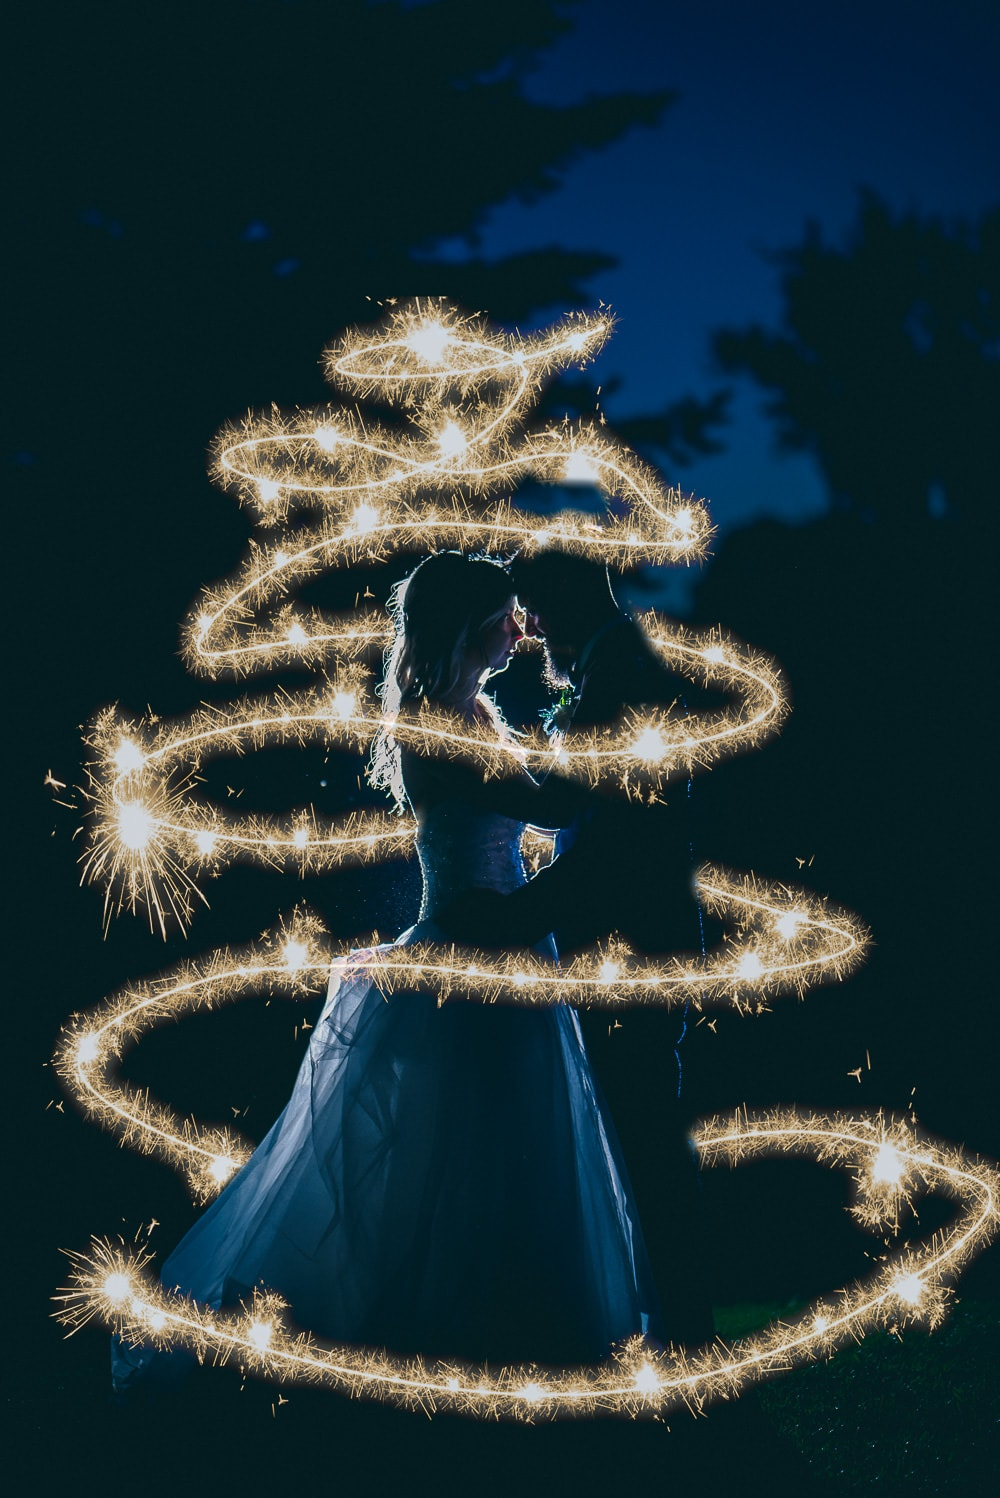 nighttime sparkler wedding photo at craigowan golf club